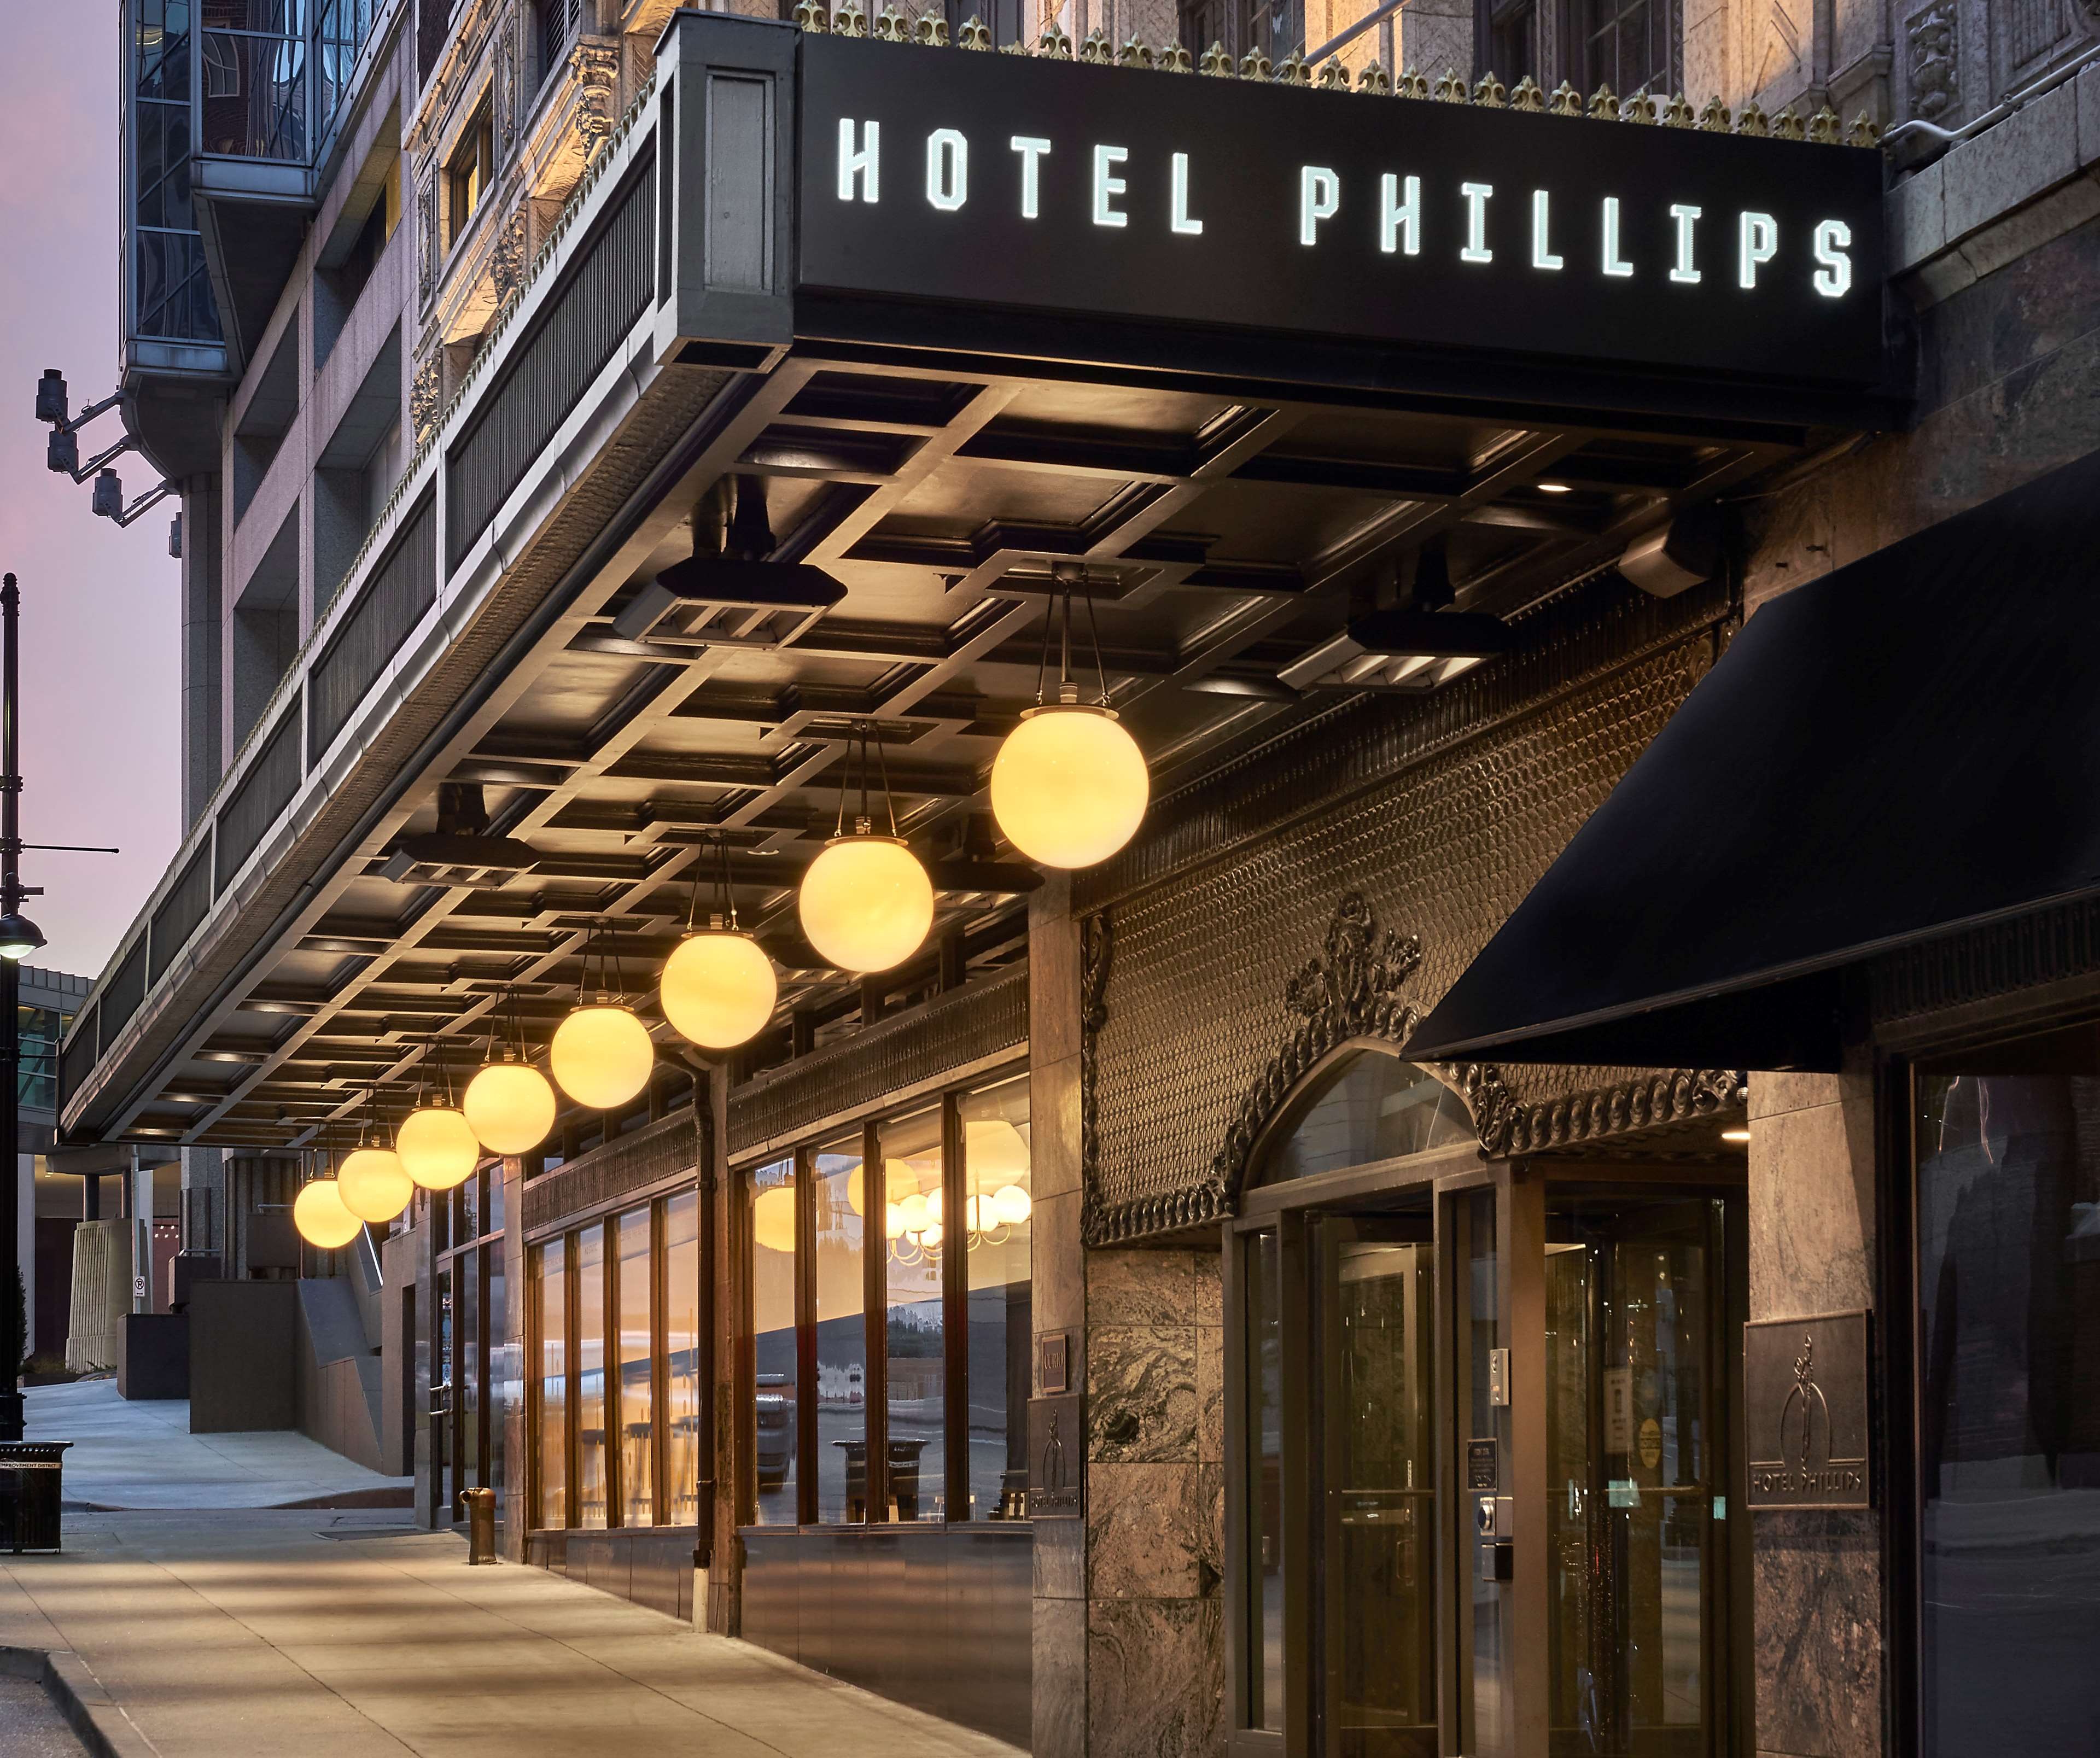 Hotel Phillips Kansas City, Curio Collection by Hilton image 2